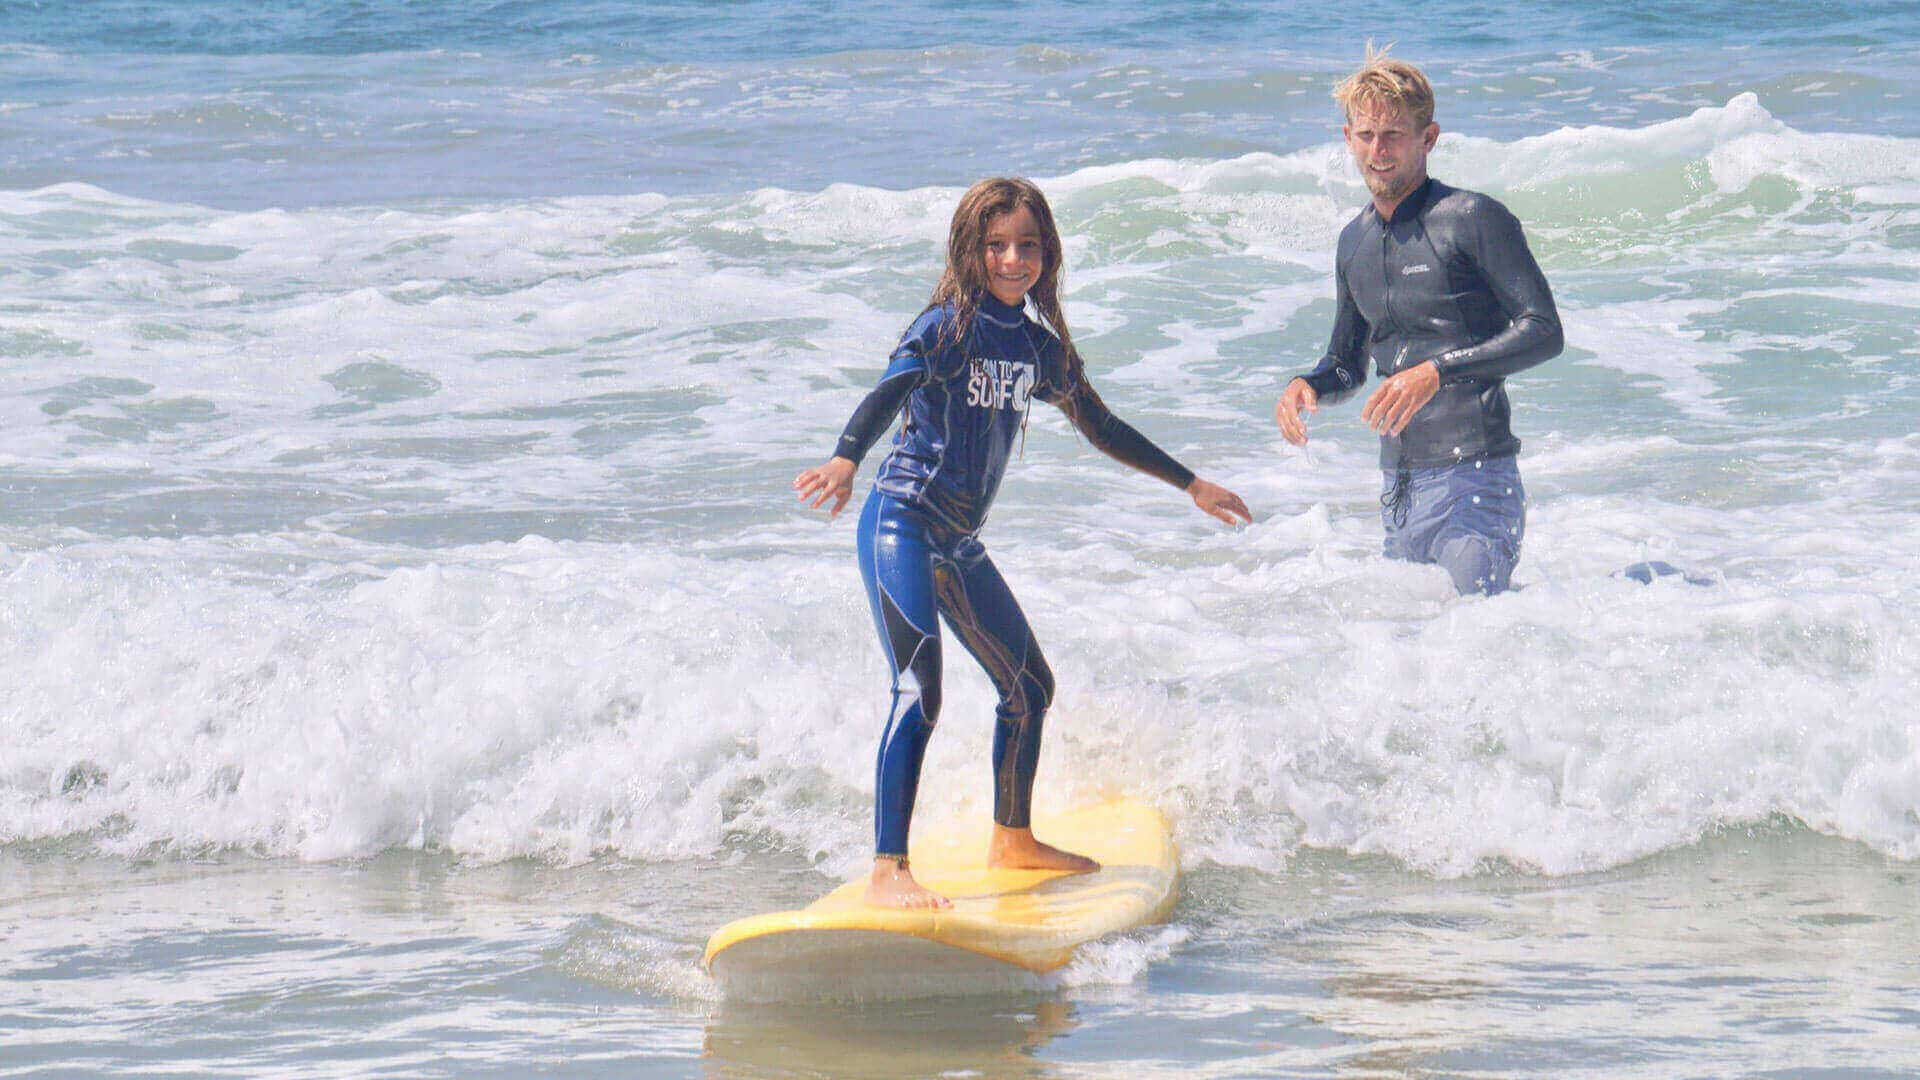 Best Wakesurf Board For Kids - Dig and Flow